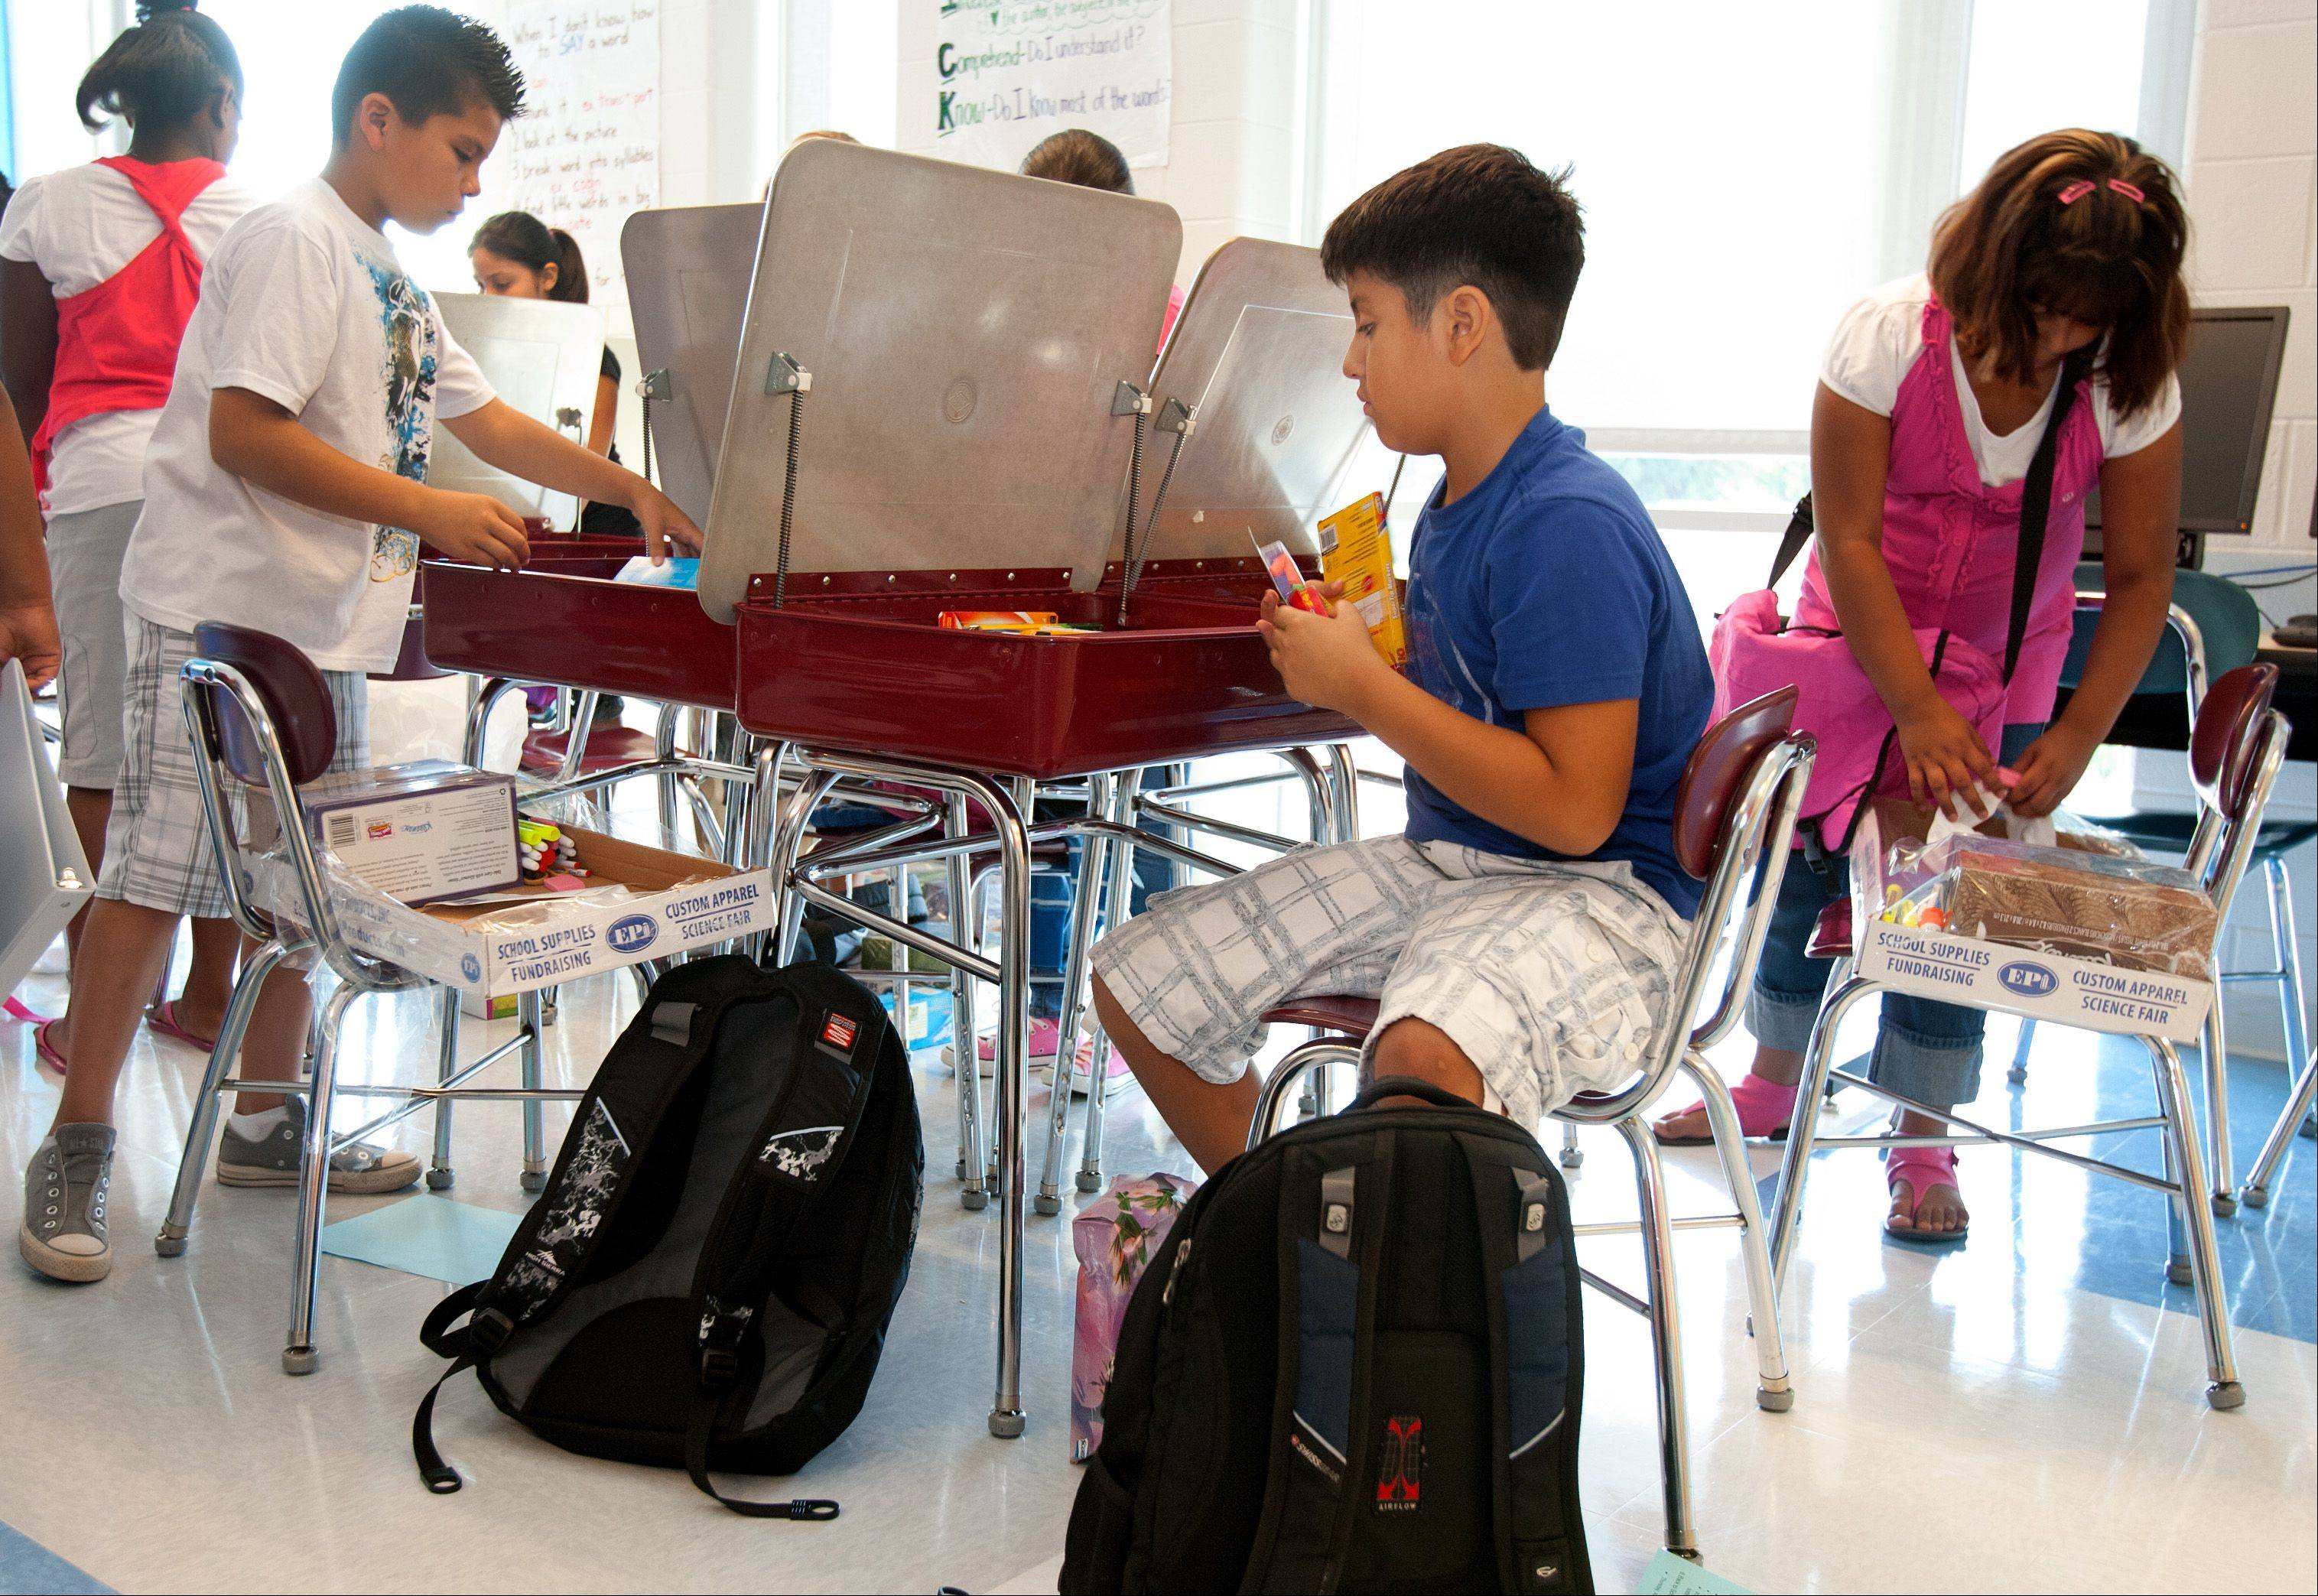 Eric Moreno, seated, puts away school supplies in his new fourth-grade classroom at Tioga School in Bensenville during the first day of classes.